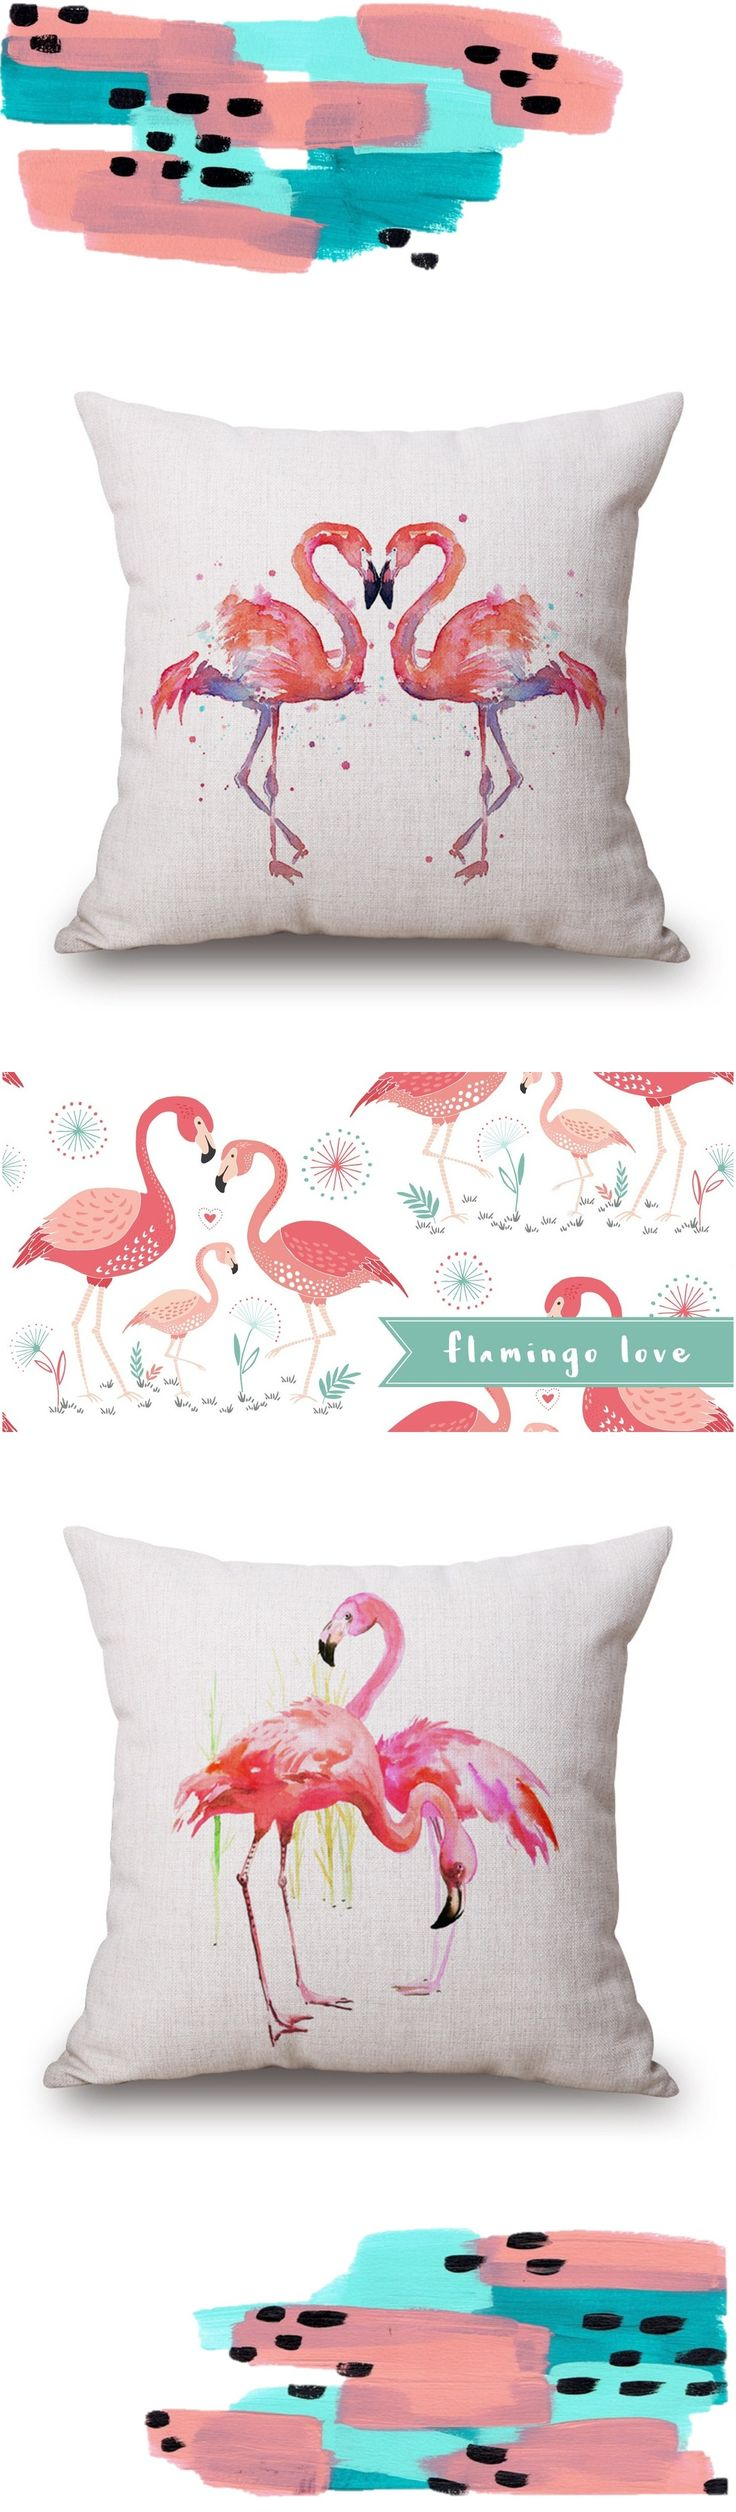 flamingo love decorative pillow covers -- keep calm and flamingle!